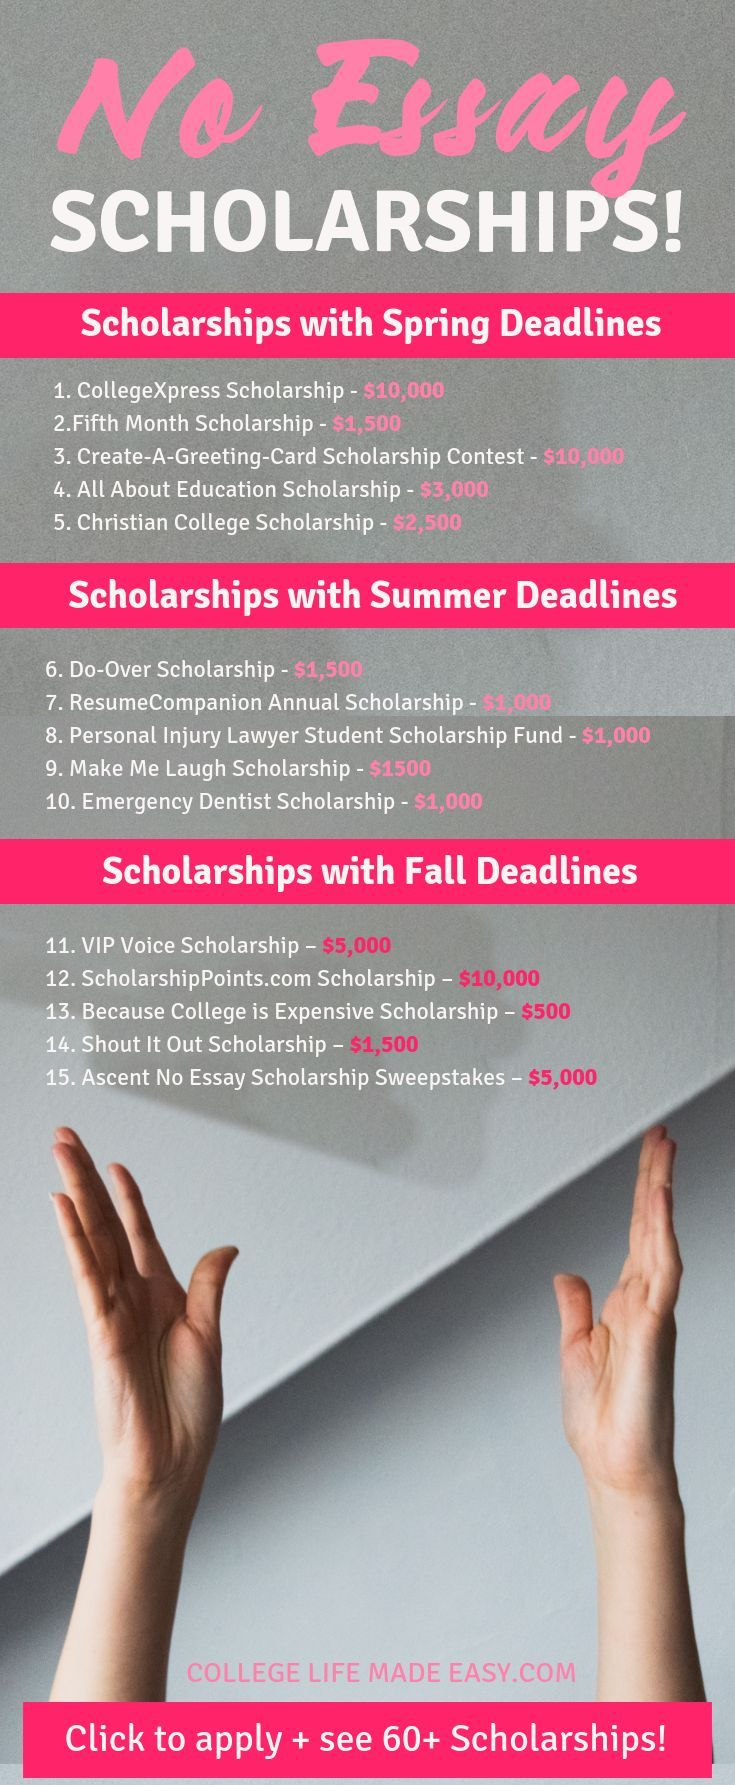 Full Size of What Is The No Essay Scholarship